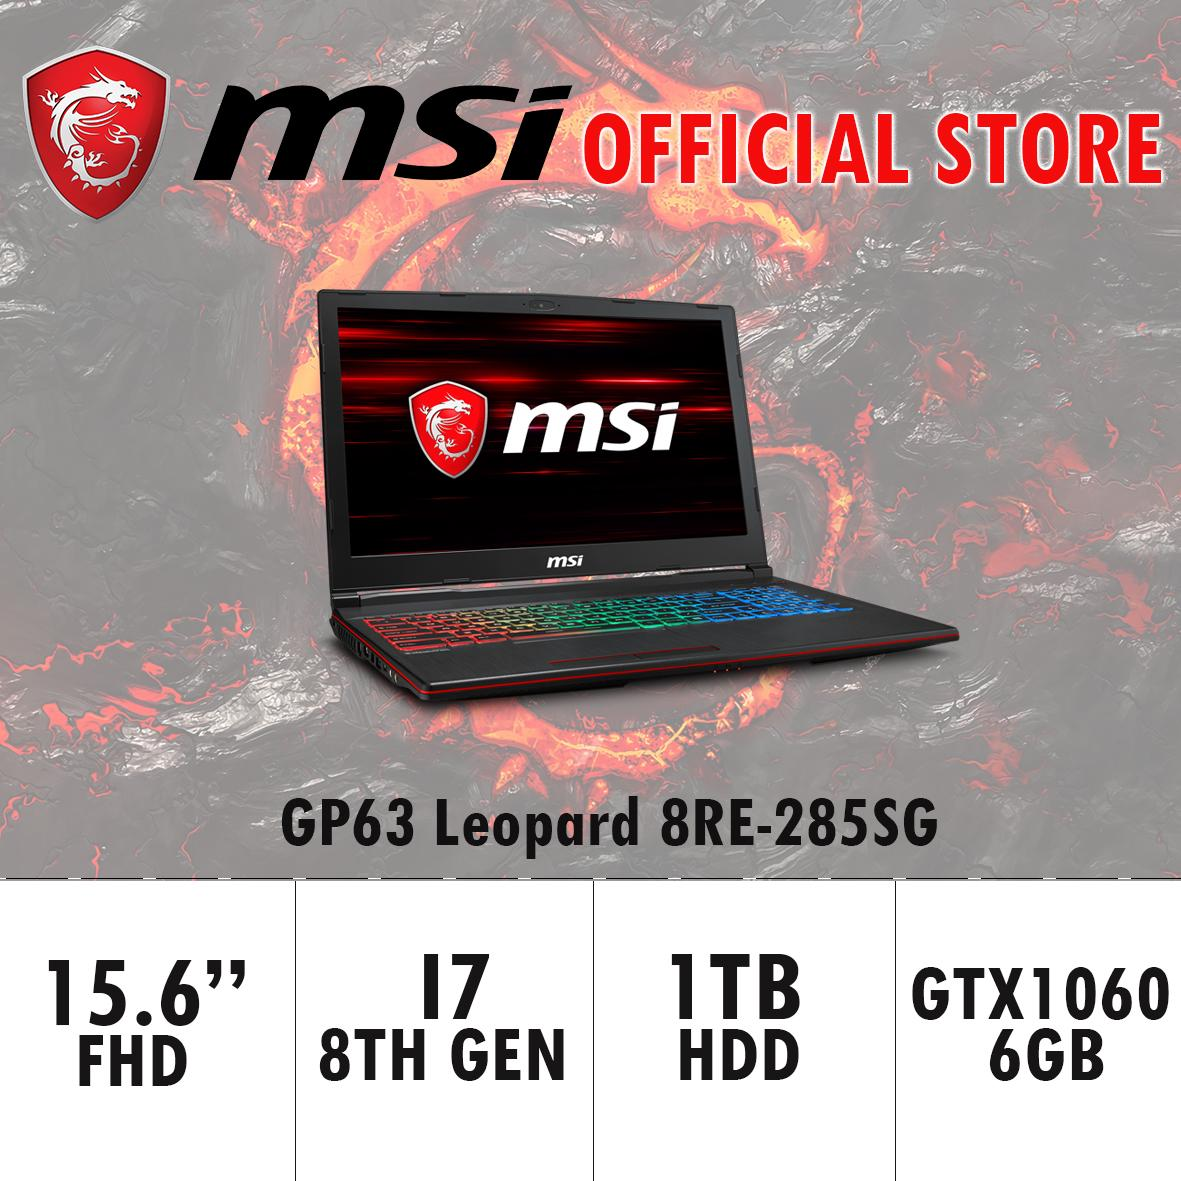 MSI GP63 Leopard 8RE-285SG (I7-8750H/8GB DDR4/128GB SSD/GTX1060) GAMING LAPTOP